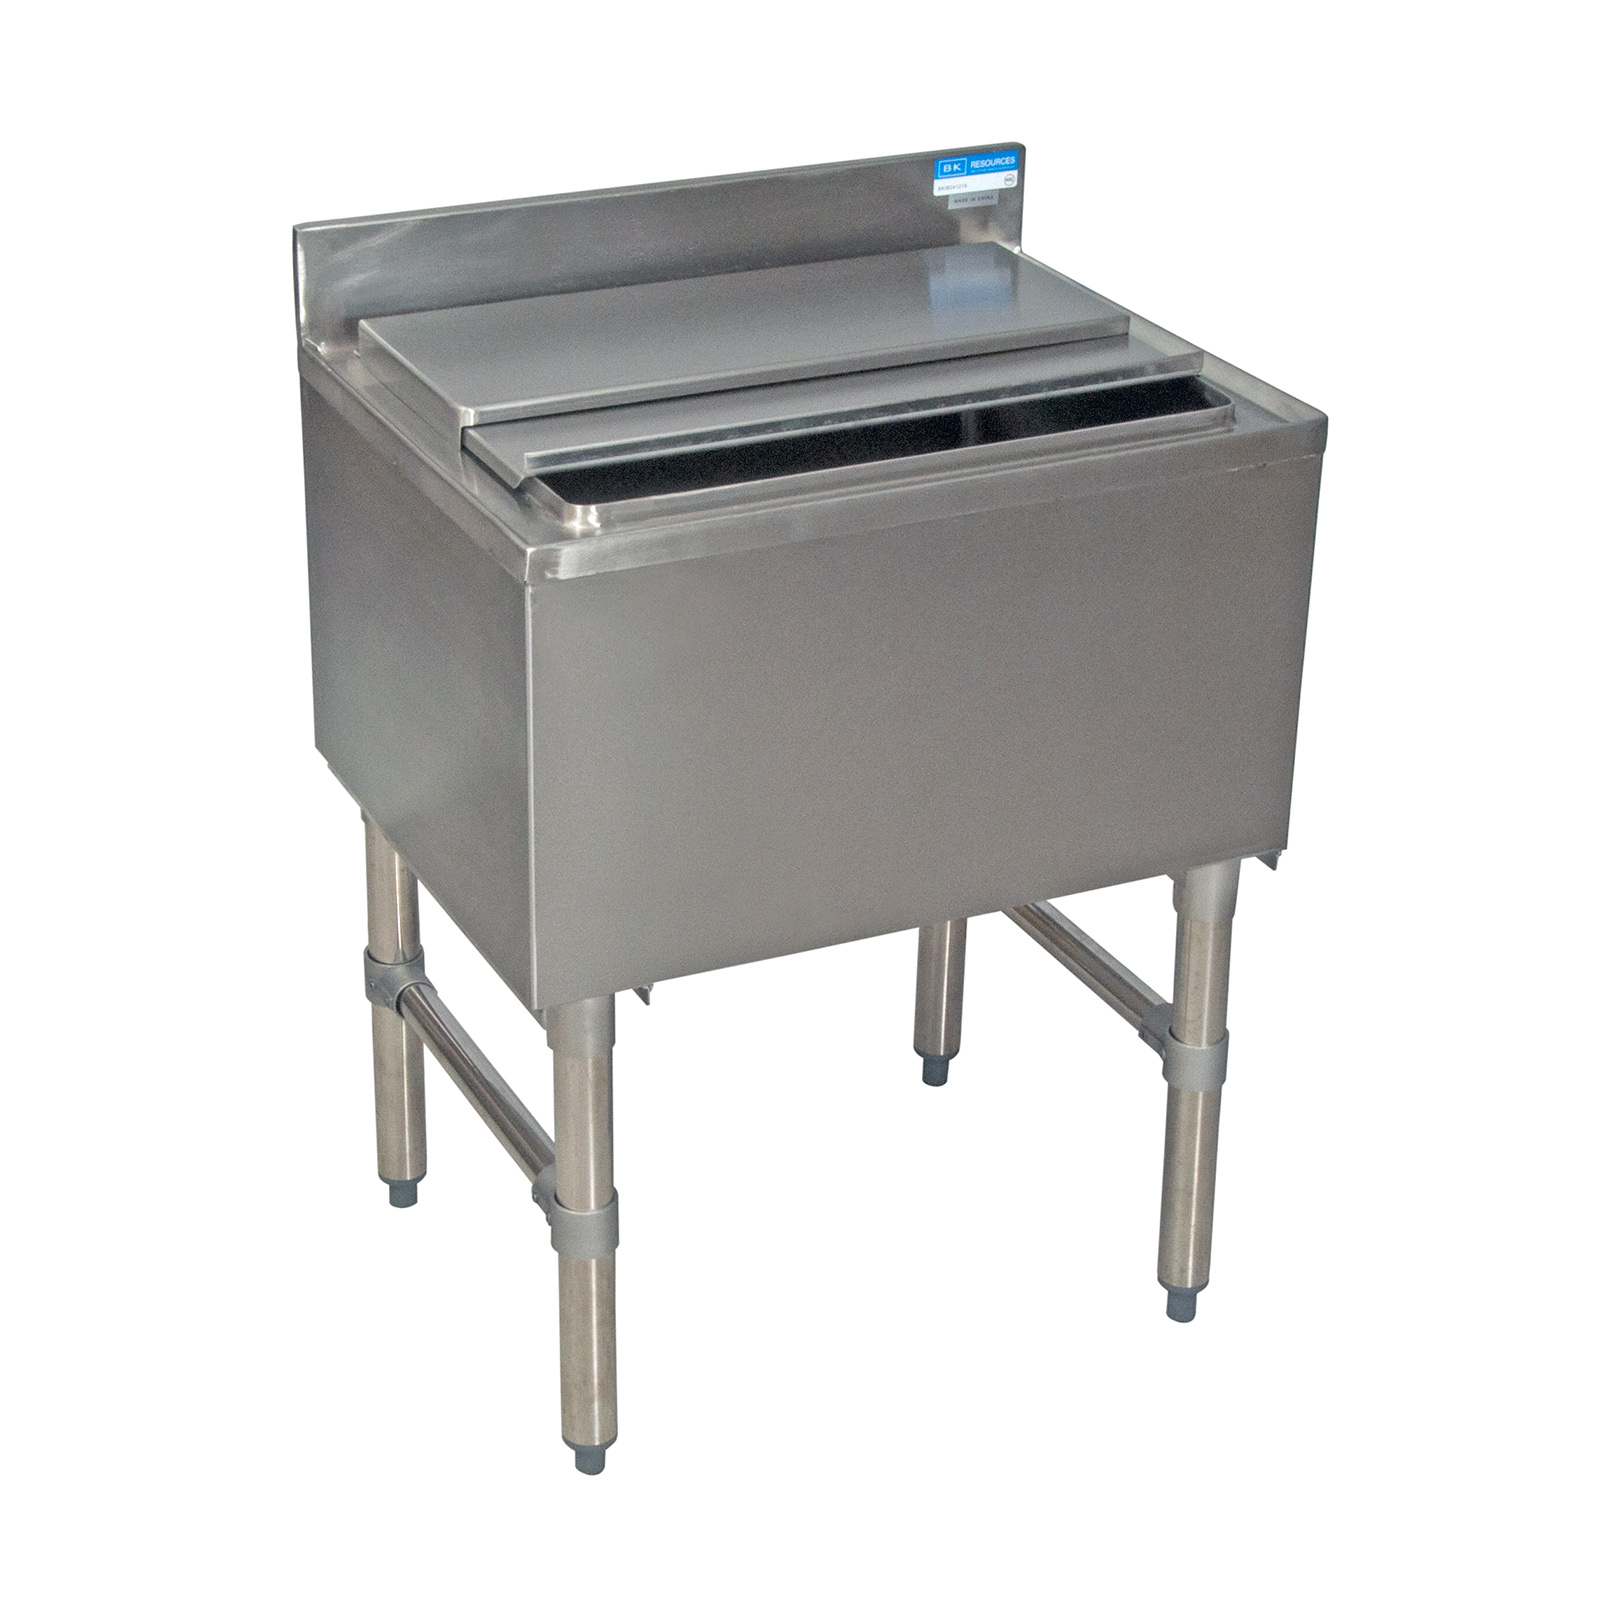 BK Resources BKIB-4812-21S underbar ice bin/cocktail unit